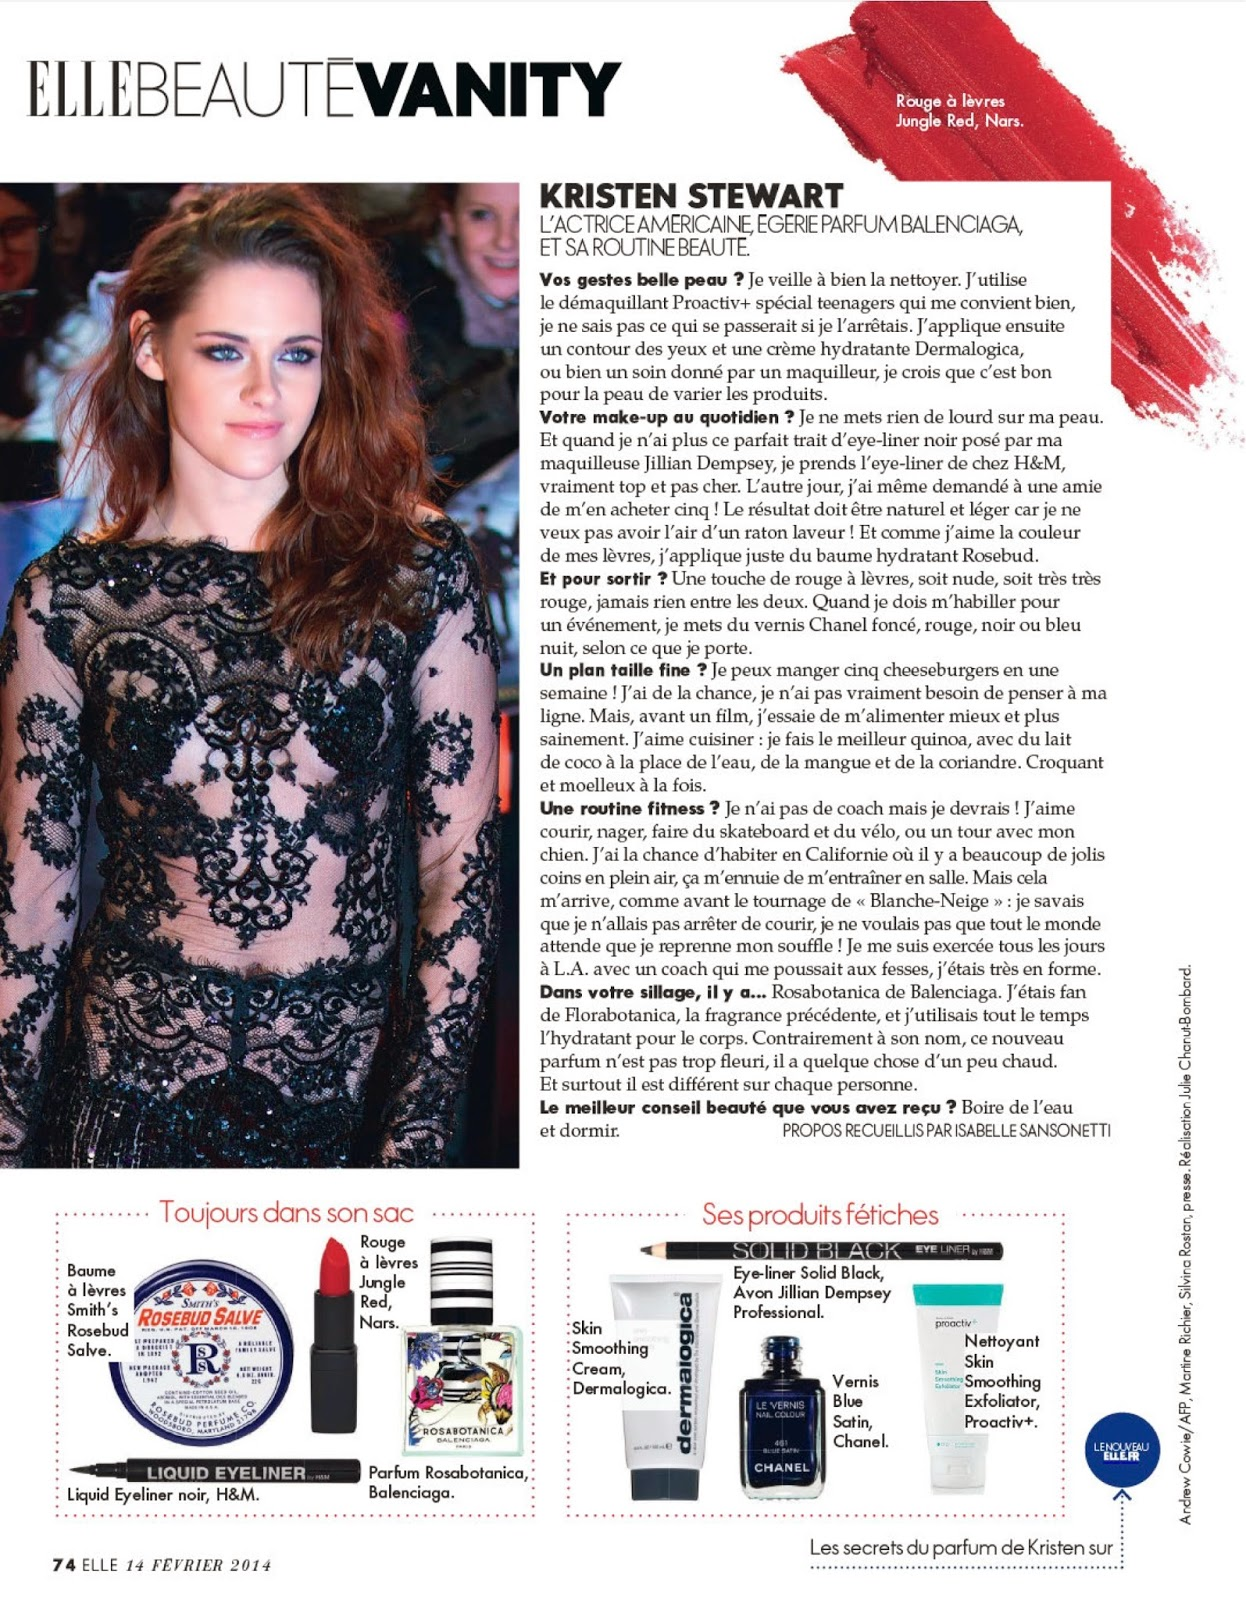 Kristen Stewart's beauty tips in ELLE France 3555 february 2014